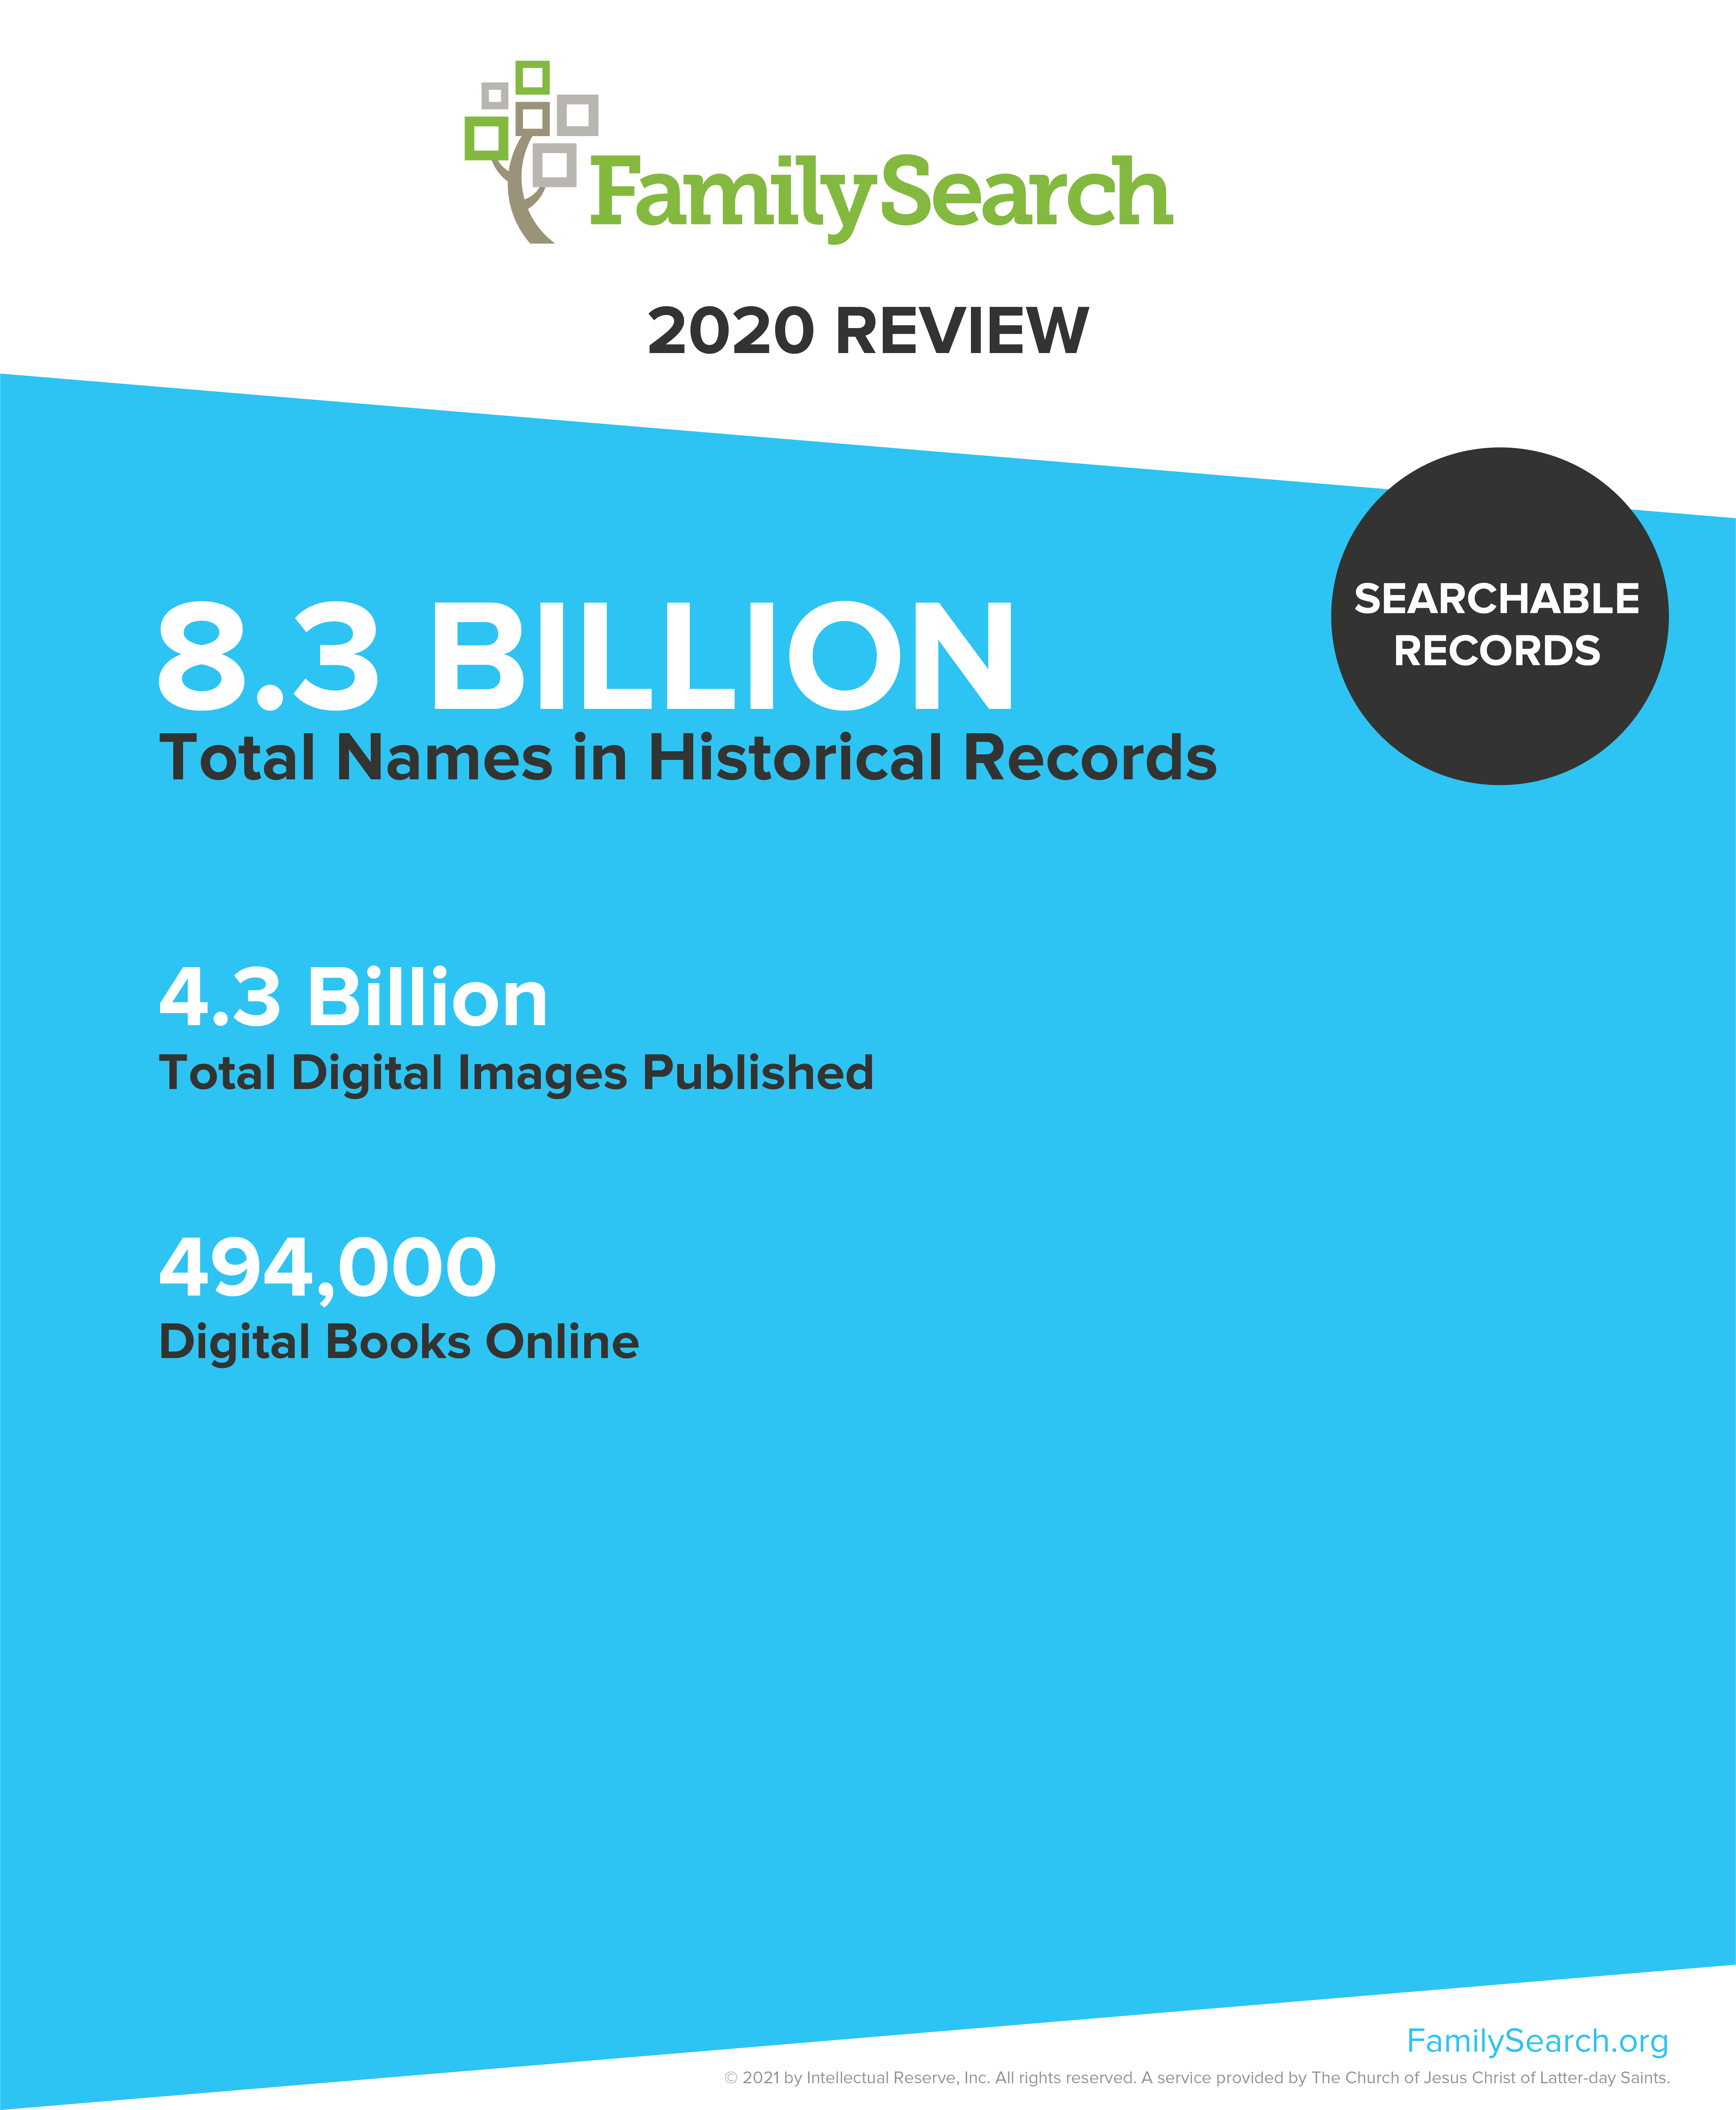 FamilySearch Searchable Records Highlights 2020